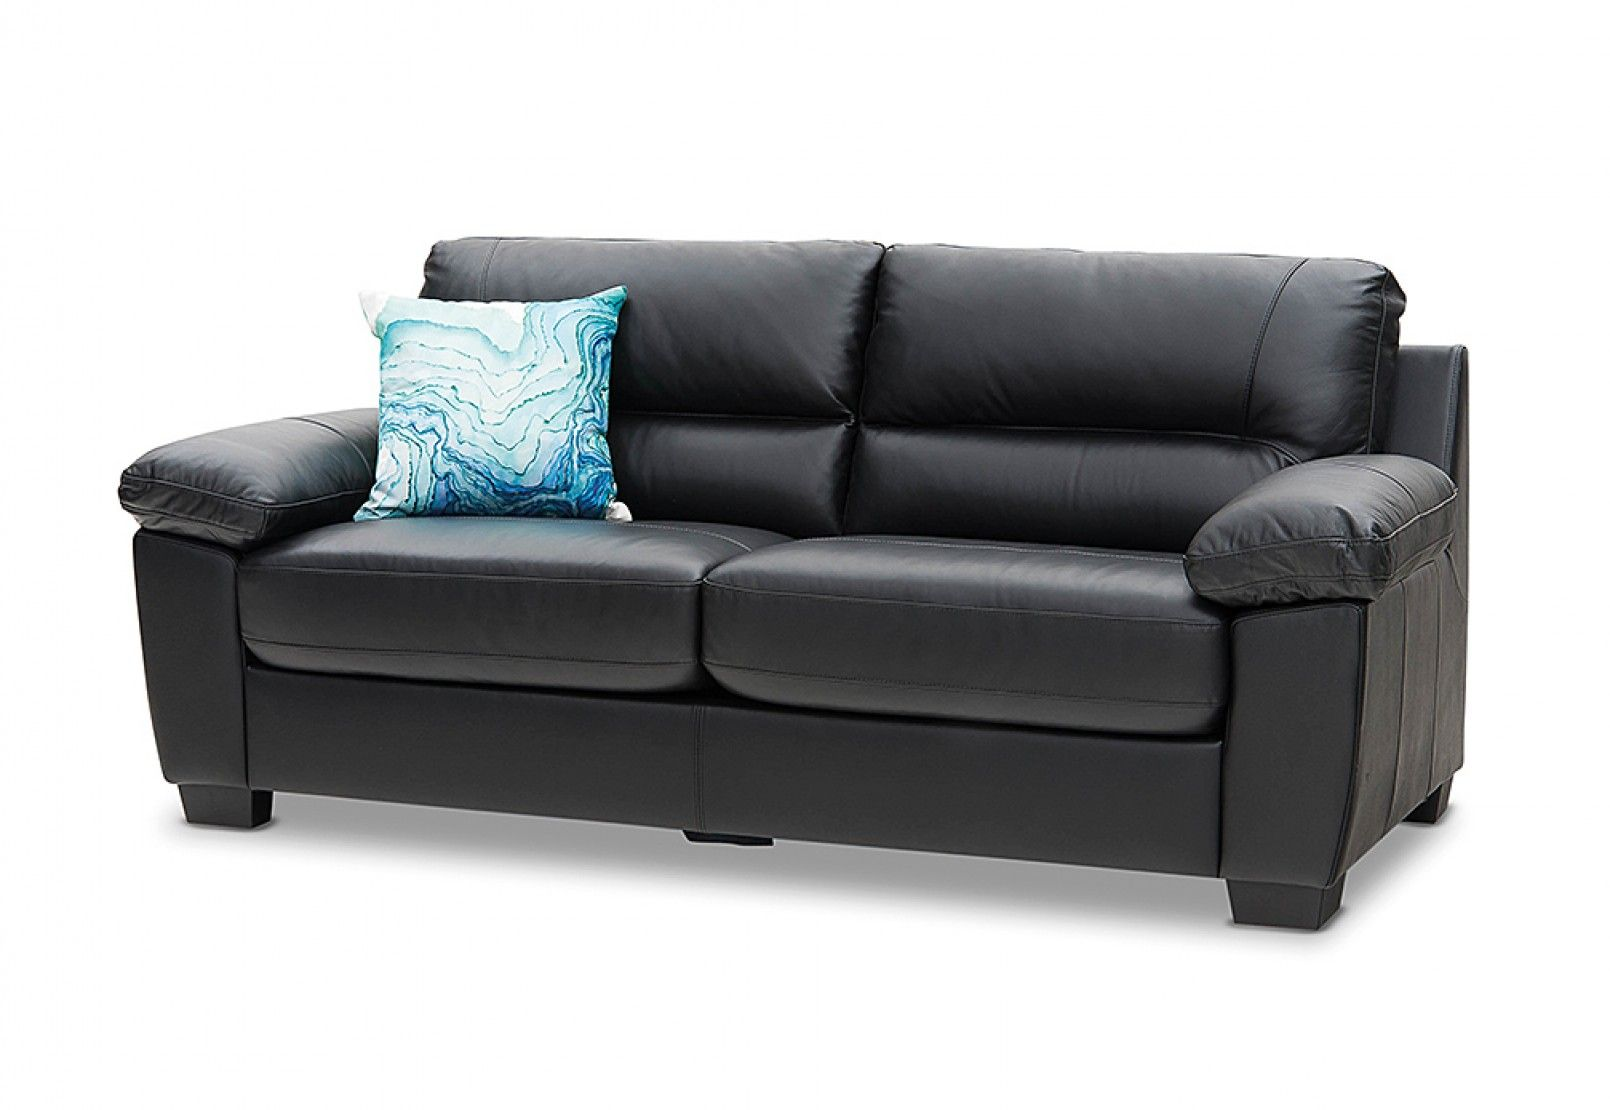 Colin Leather Sofa Bed Amart Furniture Leather Sofa Bed